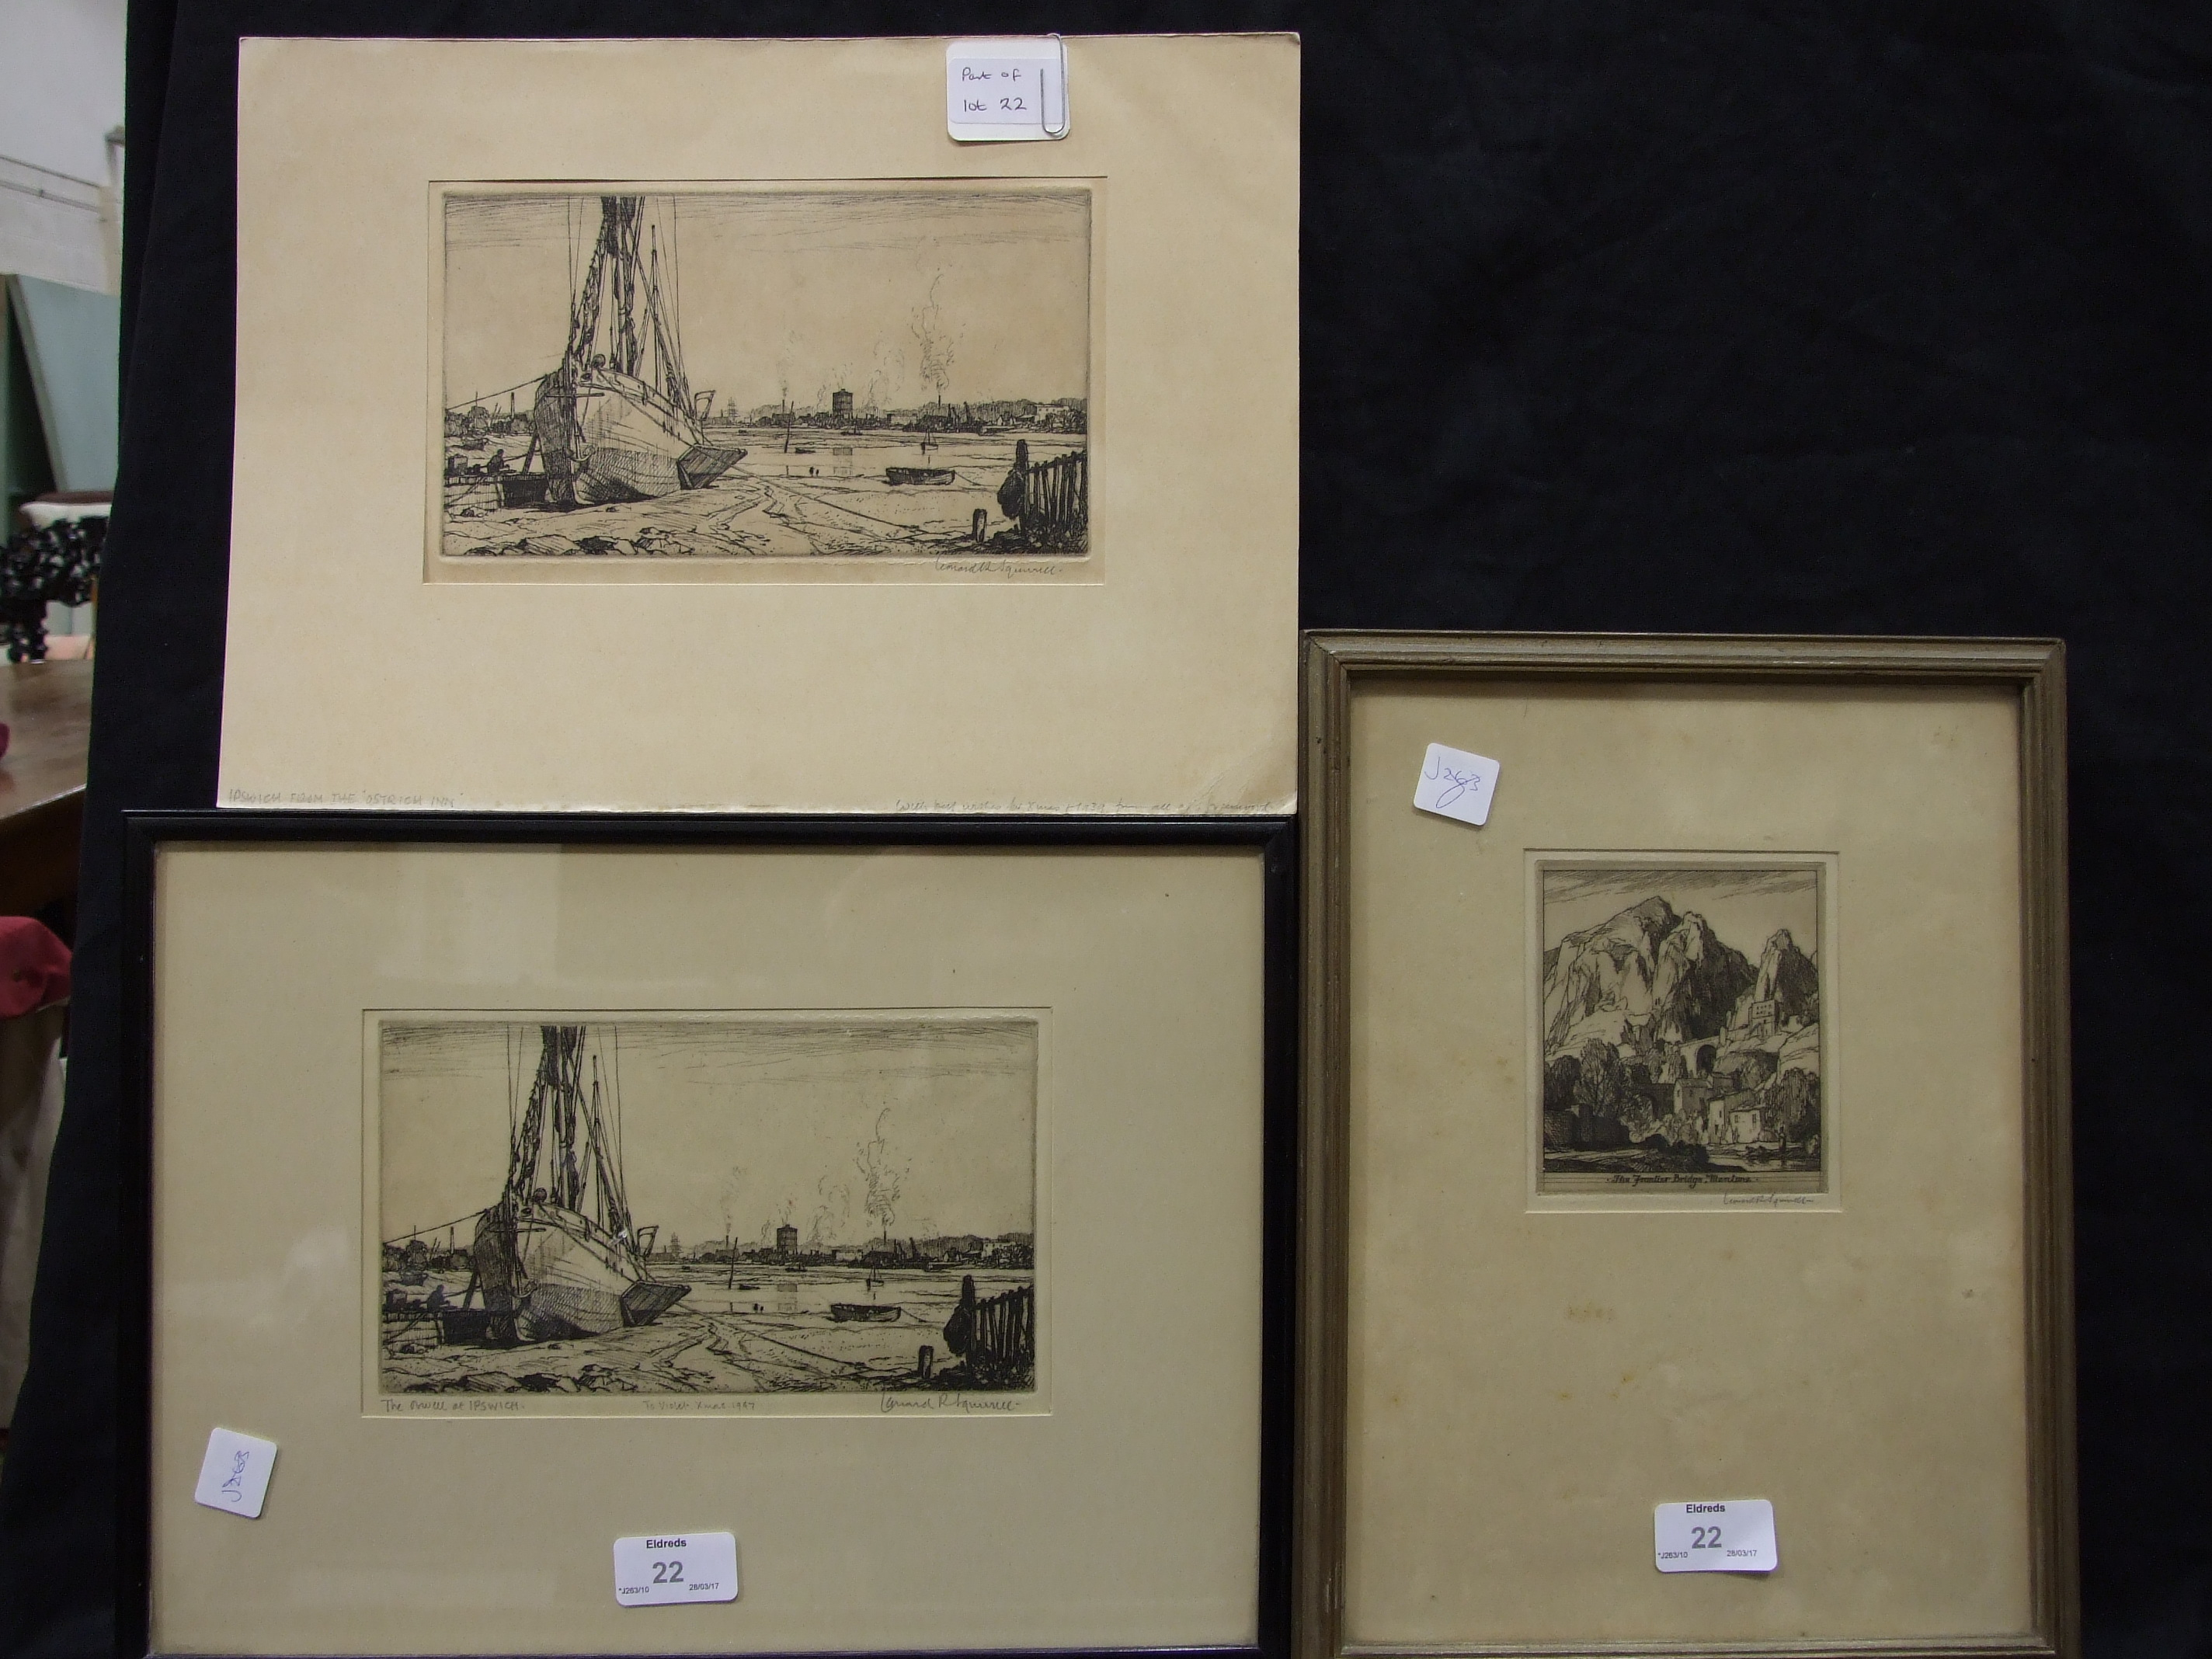 """Lot 22 - After Leonard R Squirrell """"The Orwell at Ipswich"""", engraving, signed and titled in pencil on mount"""